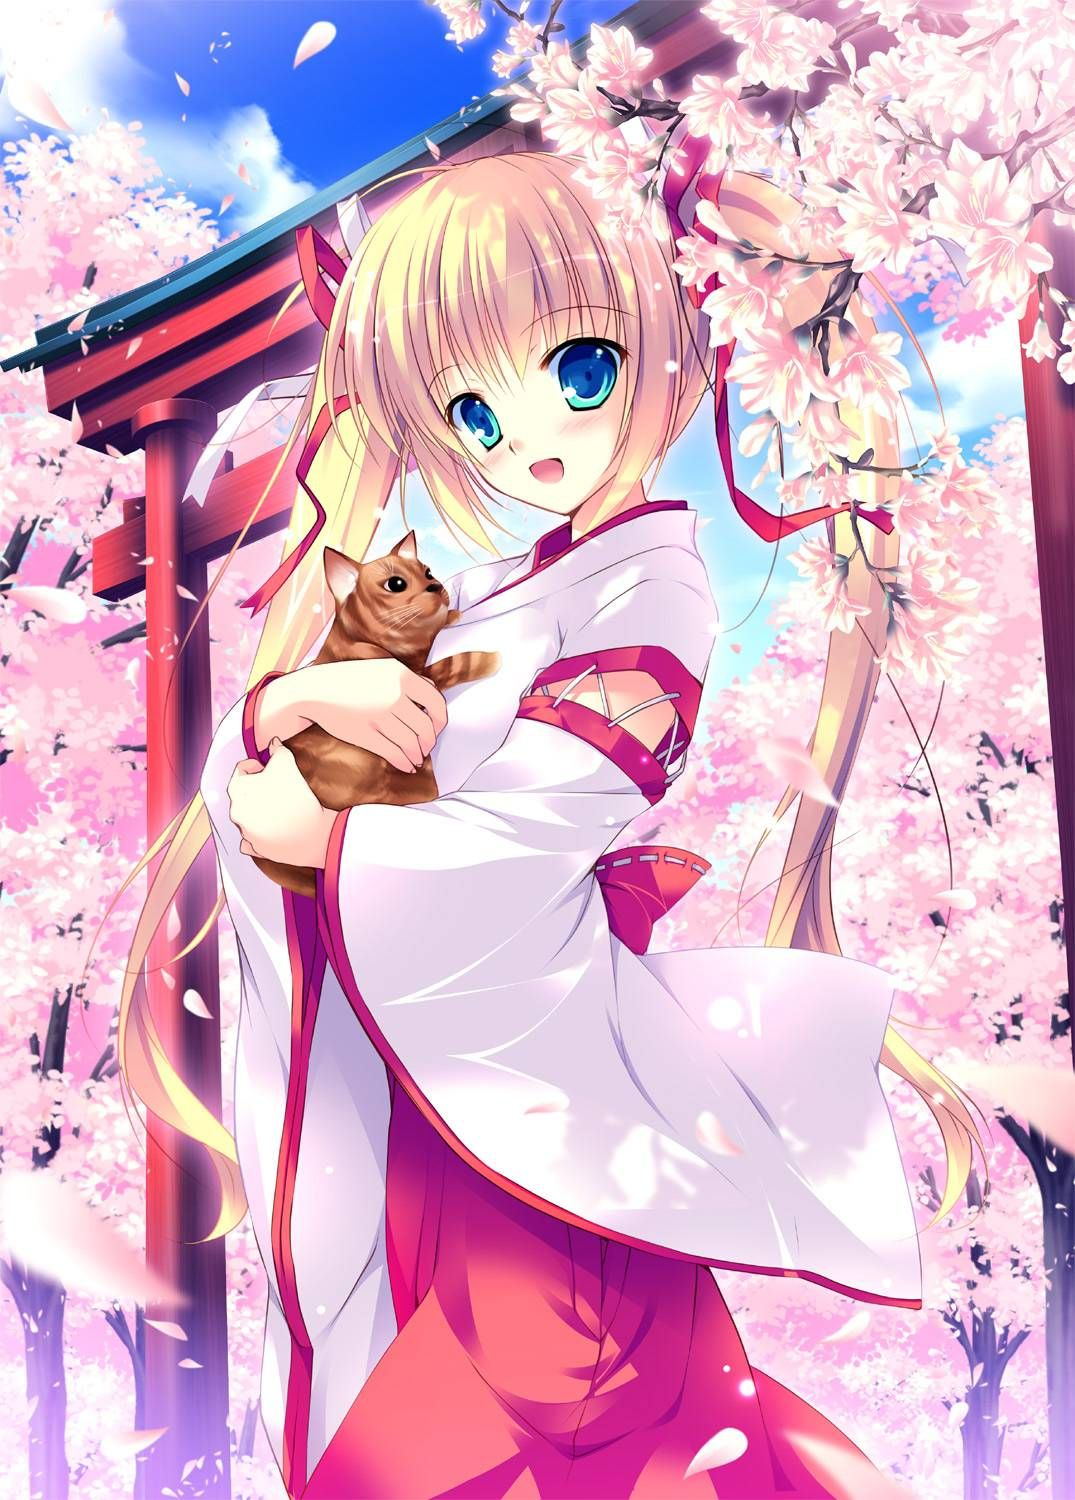 Anime girl cute blonde anime girl cute blonde anime - Cute anime girl pictures ...